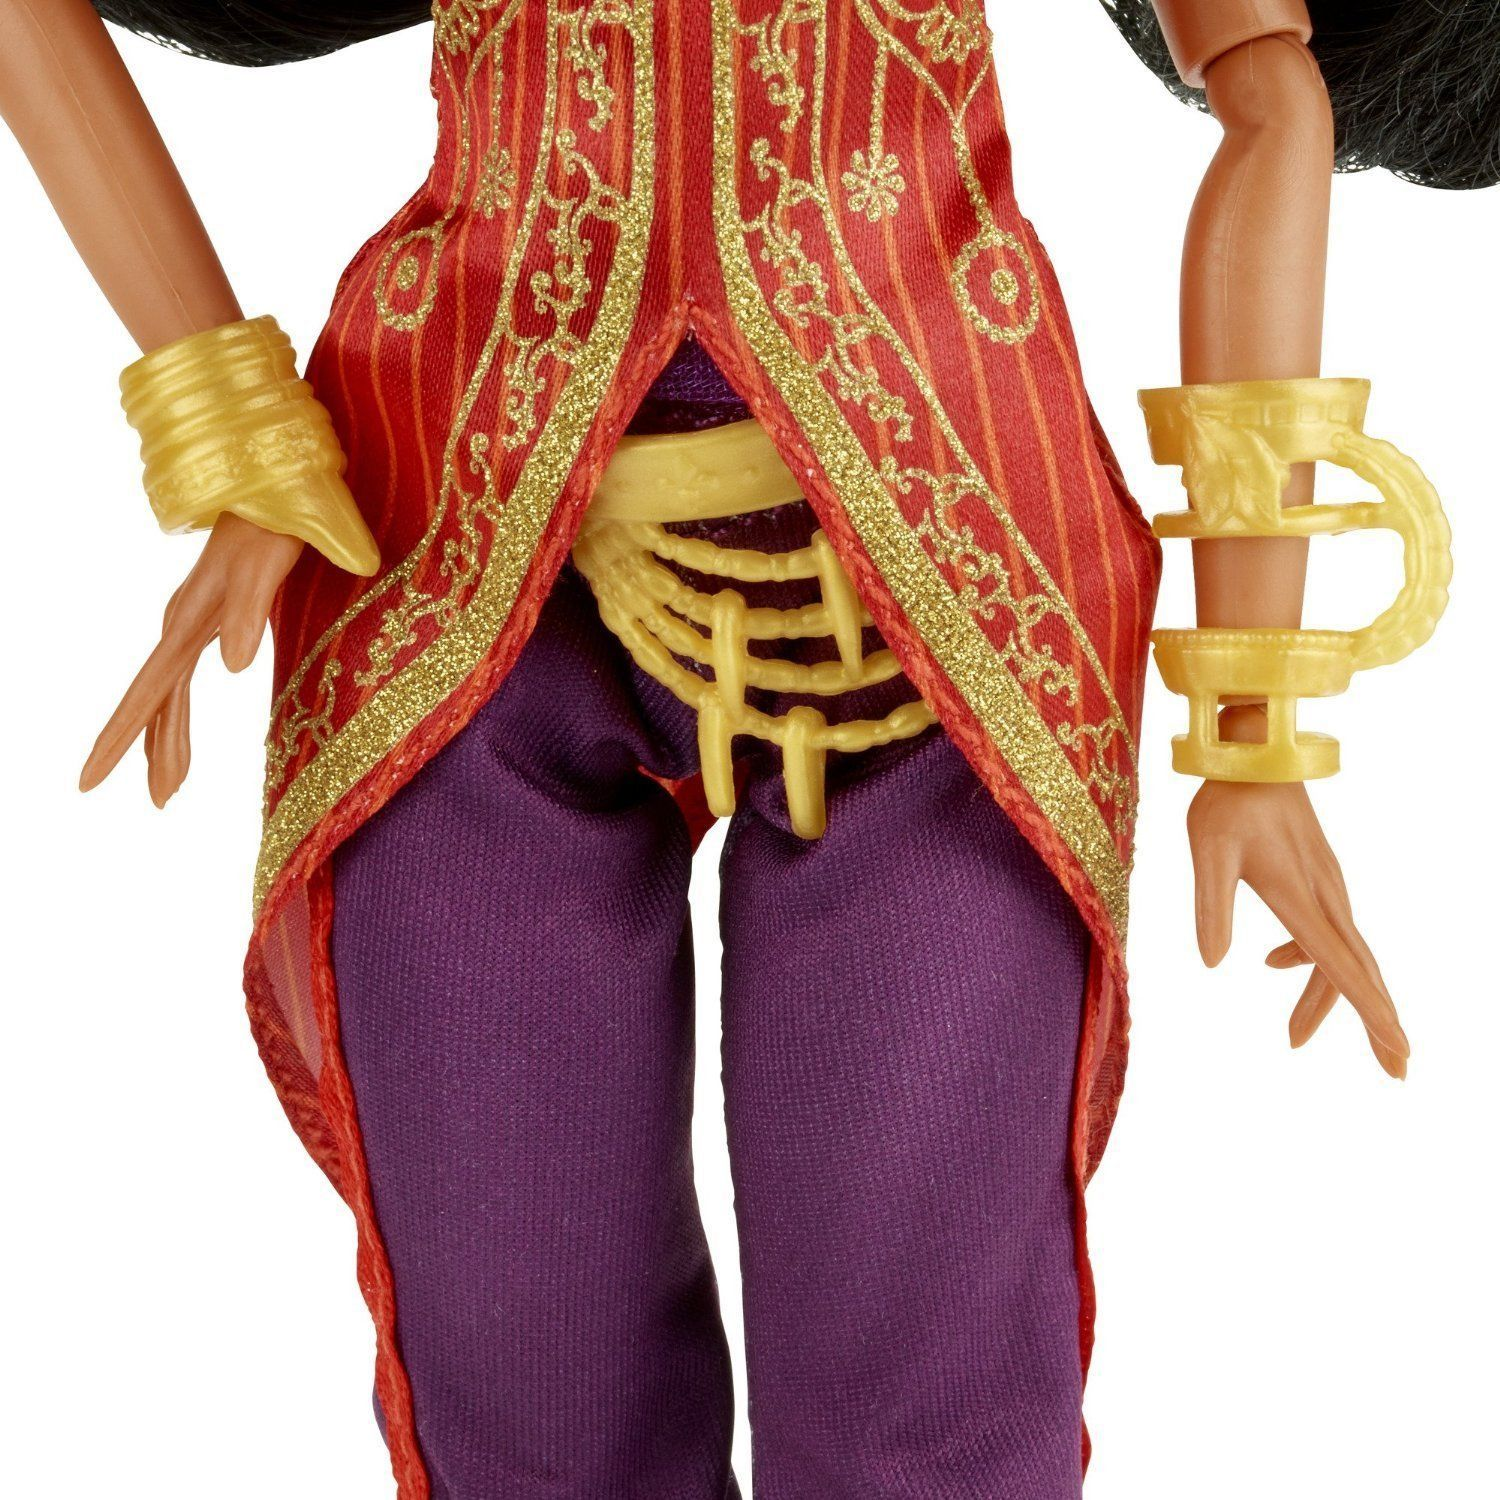 Image 3 of Disney Descendants Villain Genie Chic Freddie IE Doll Isle of the Lost